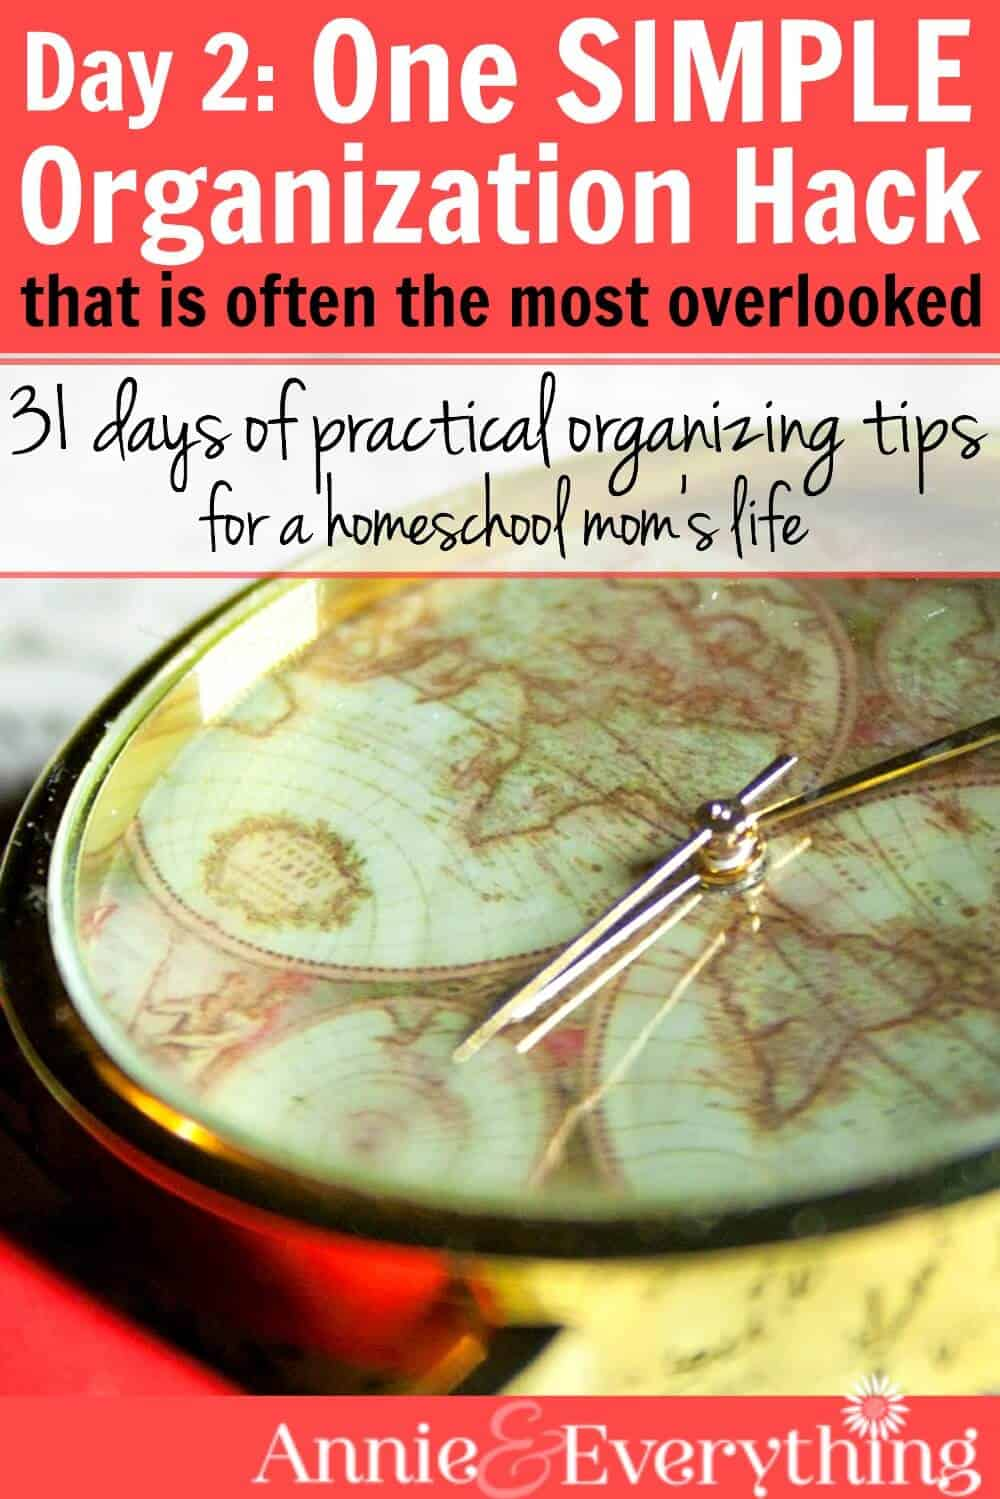 Do you ever feel like your whole day is spent putting out fires? You need this organization hack to help you become more intentional. Part of a series with tips and ideas for organizing school, home, and life!